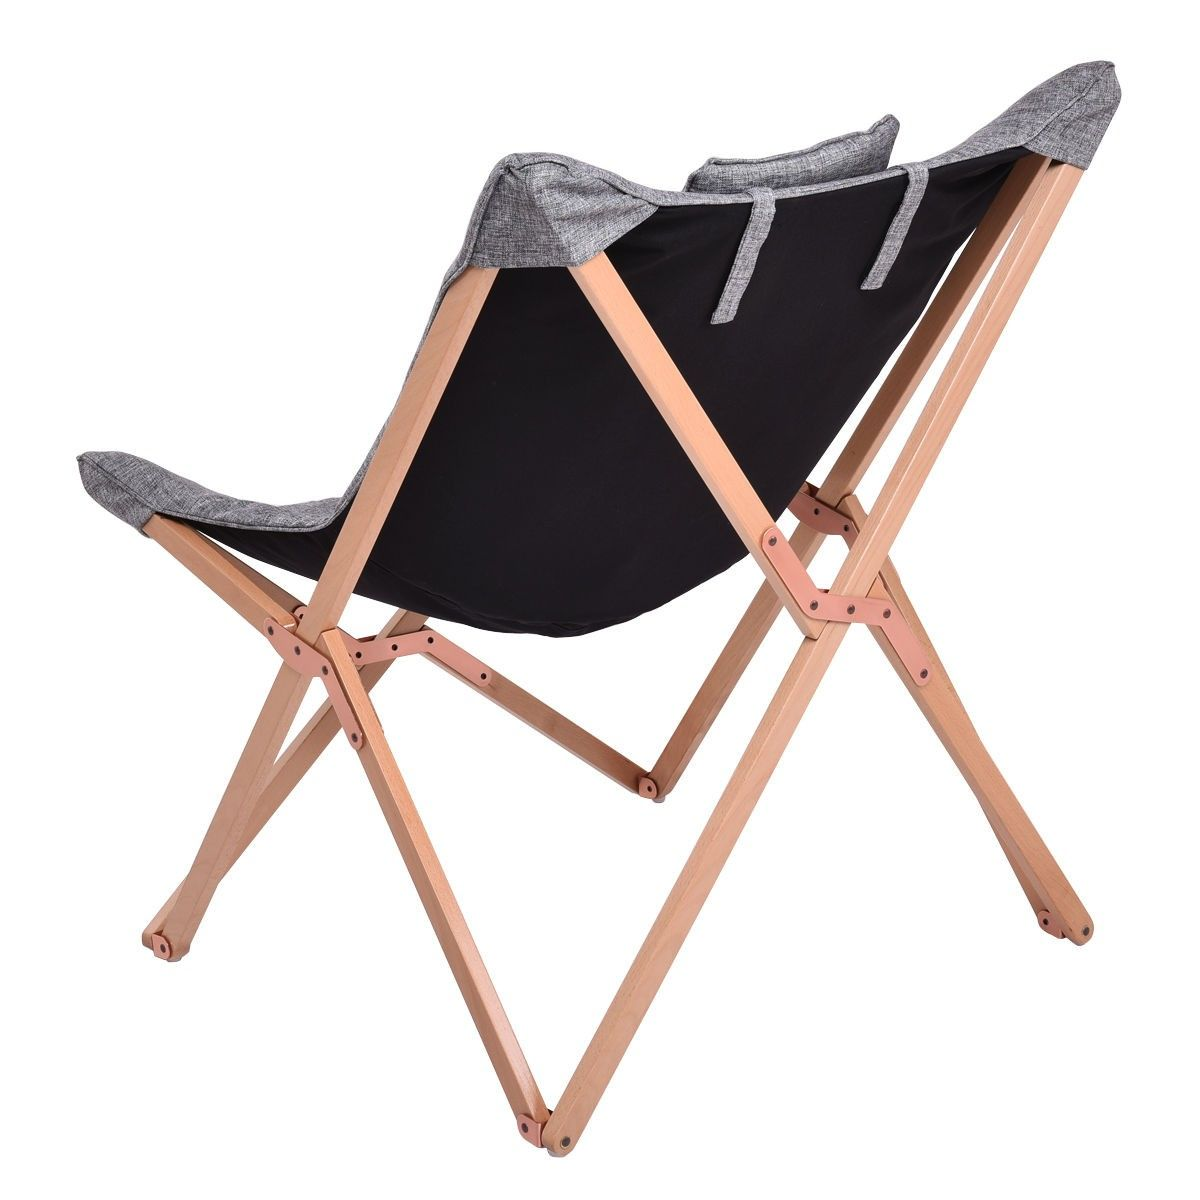 This Folding Butterfly Chair Is Of High Quality And Brand New